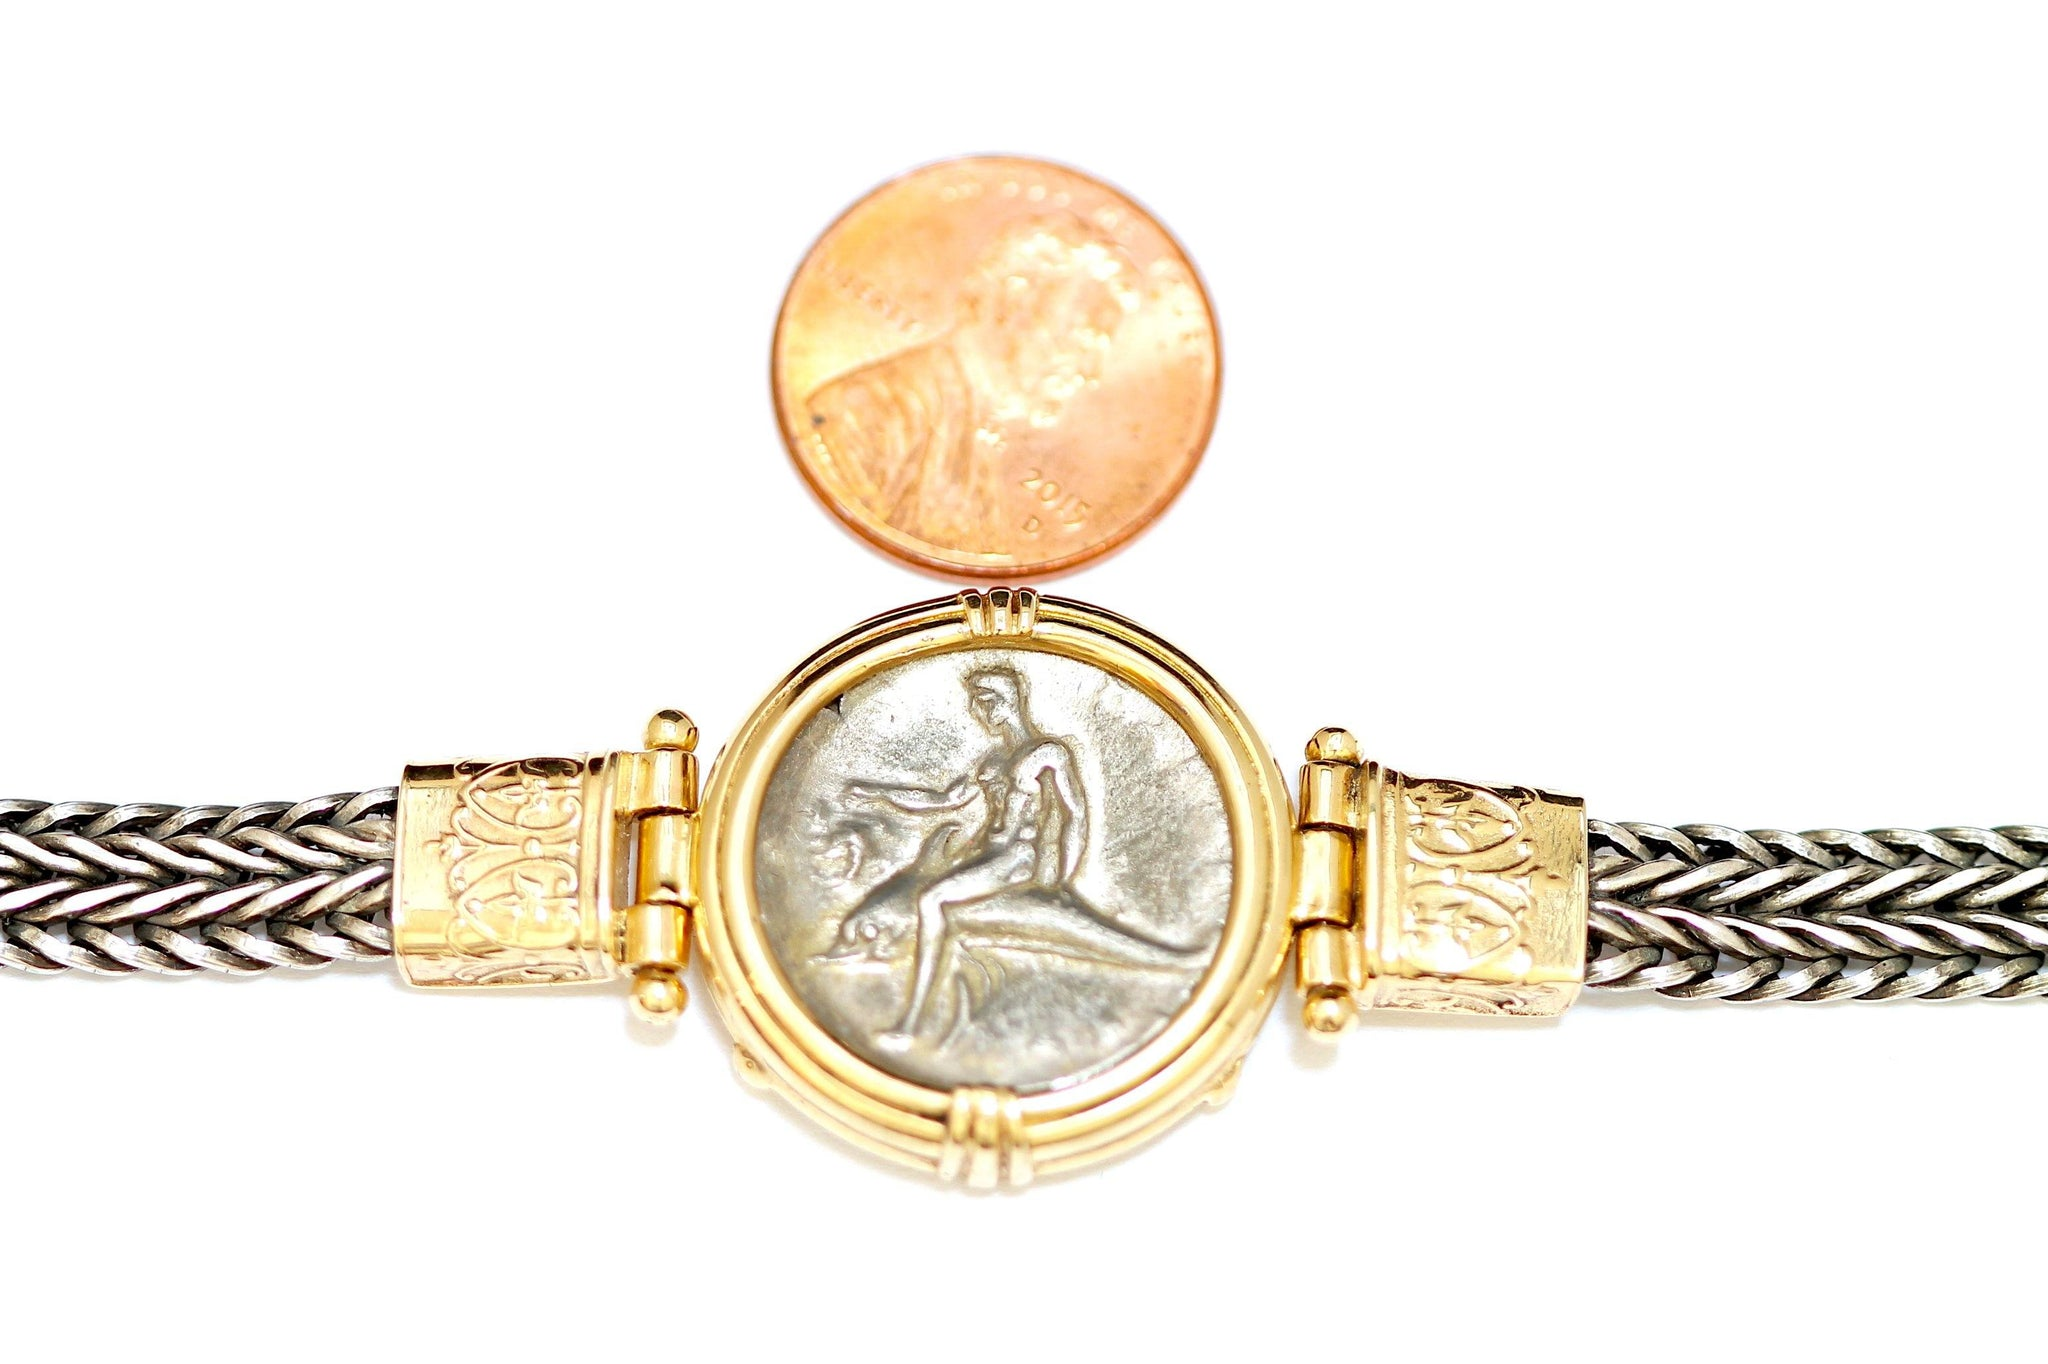 Boy on a Dolphin, Greek Coin Bracelet, 14K Gold and Sterling, Genuine Ancient Coin, with Certificate ID12744 - Erez Ancient Coin Jewelry, ancient coin jewelry, men jewelry, genuine ancient coins, made in the US